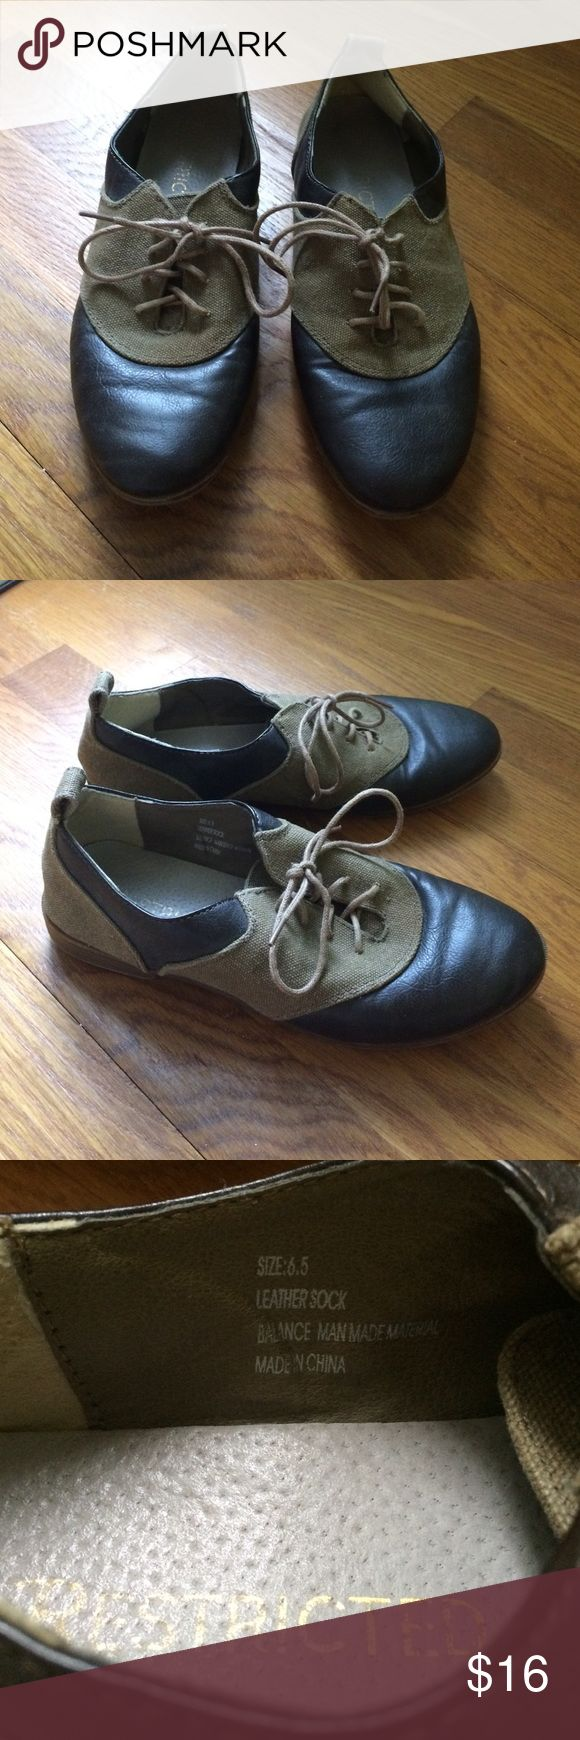 Lace-Up Oxfords Dark brown leather and cloth upper with small heel Restricted Shoes Flats & Loafers